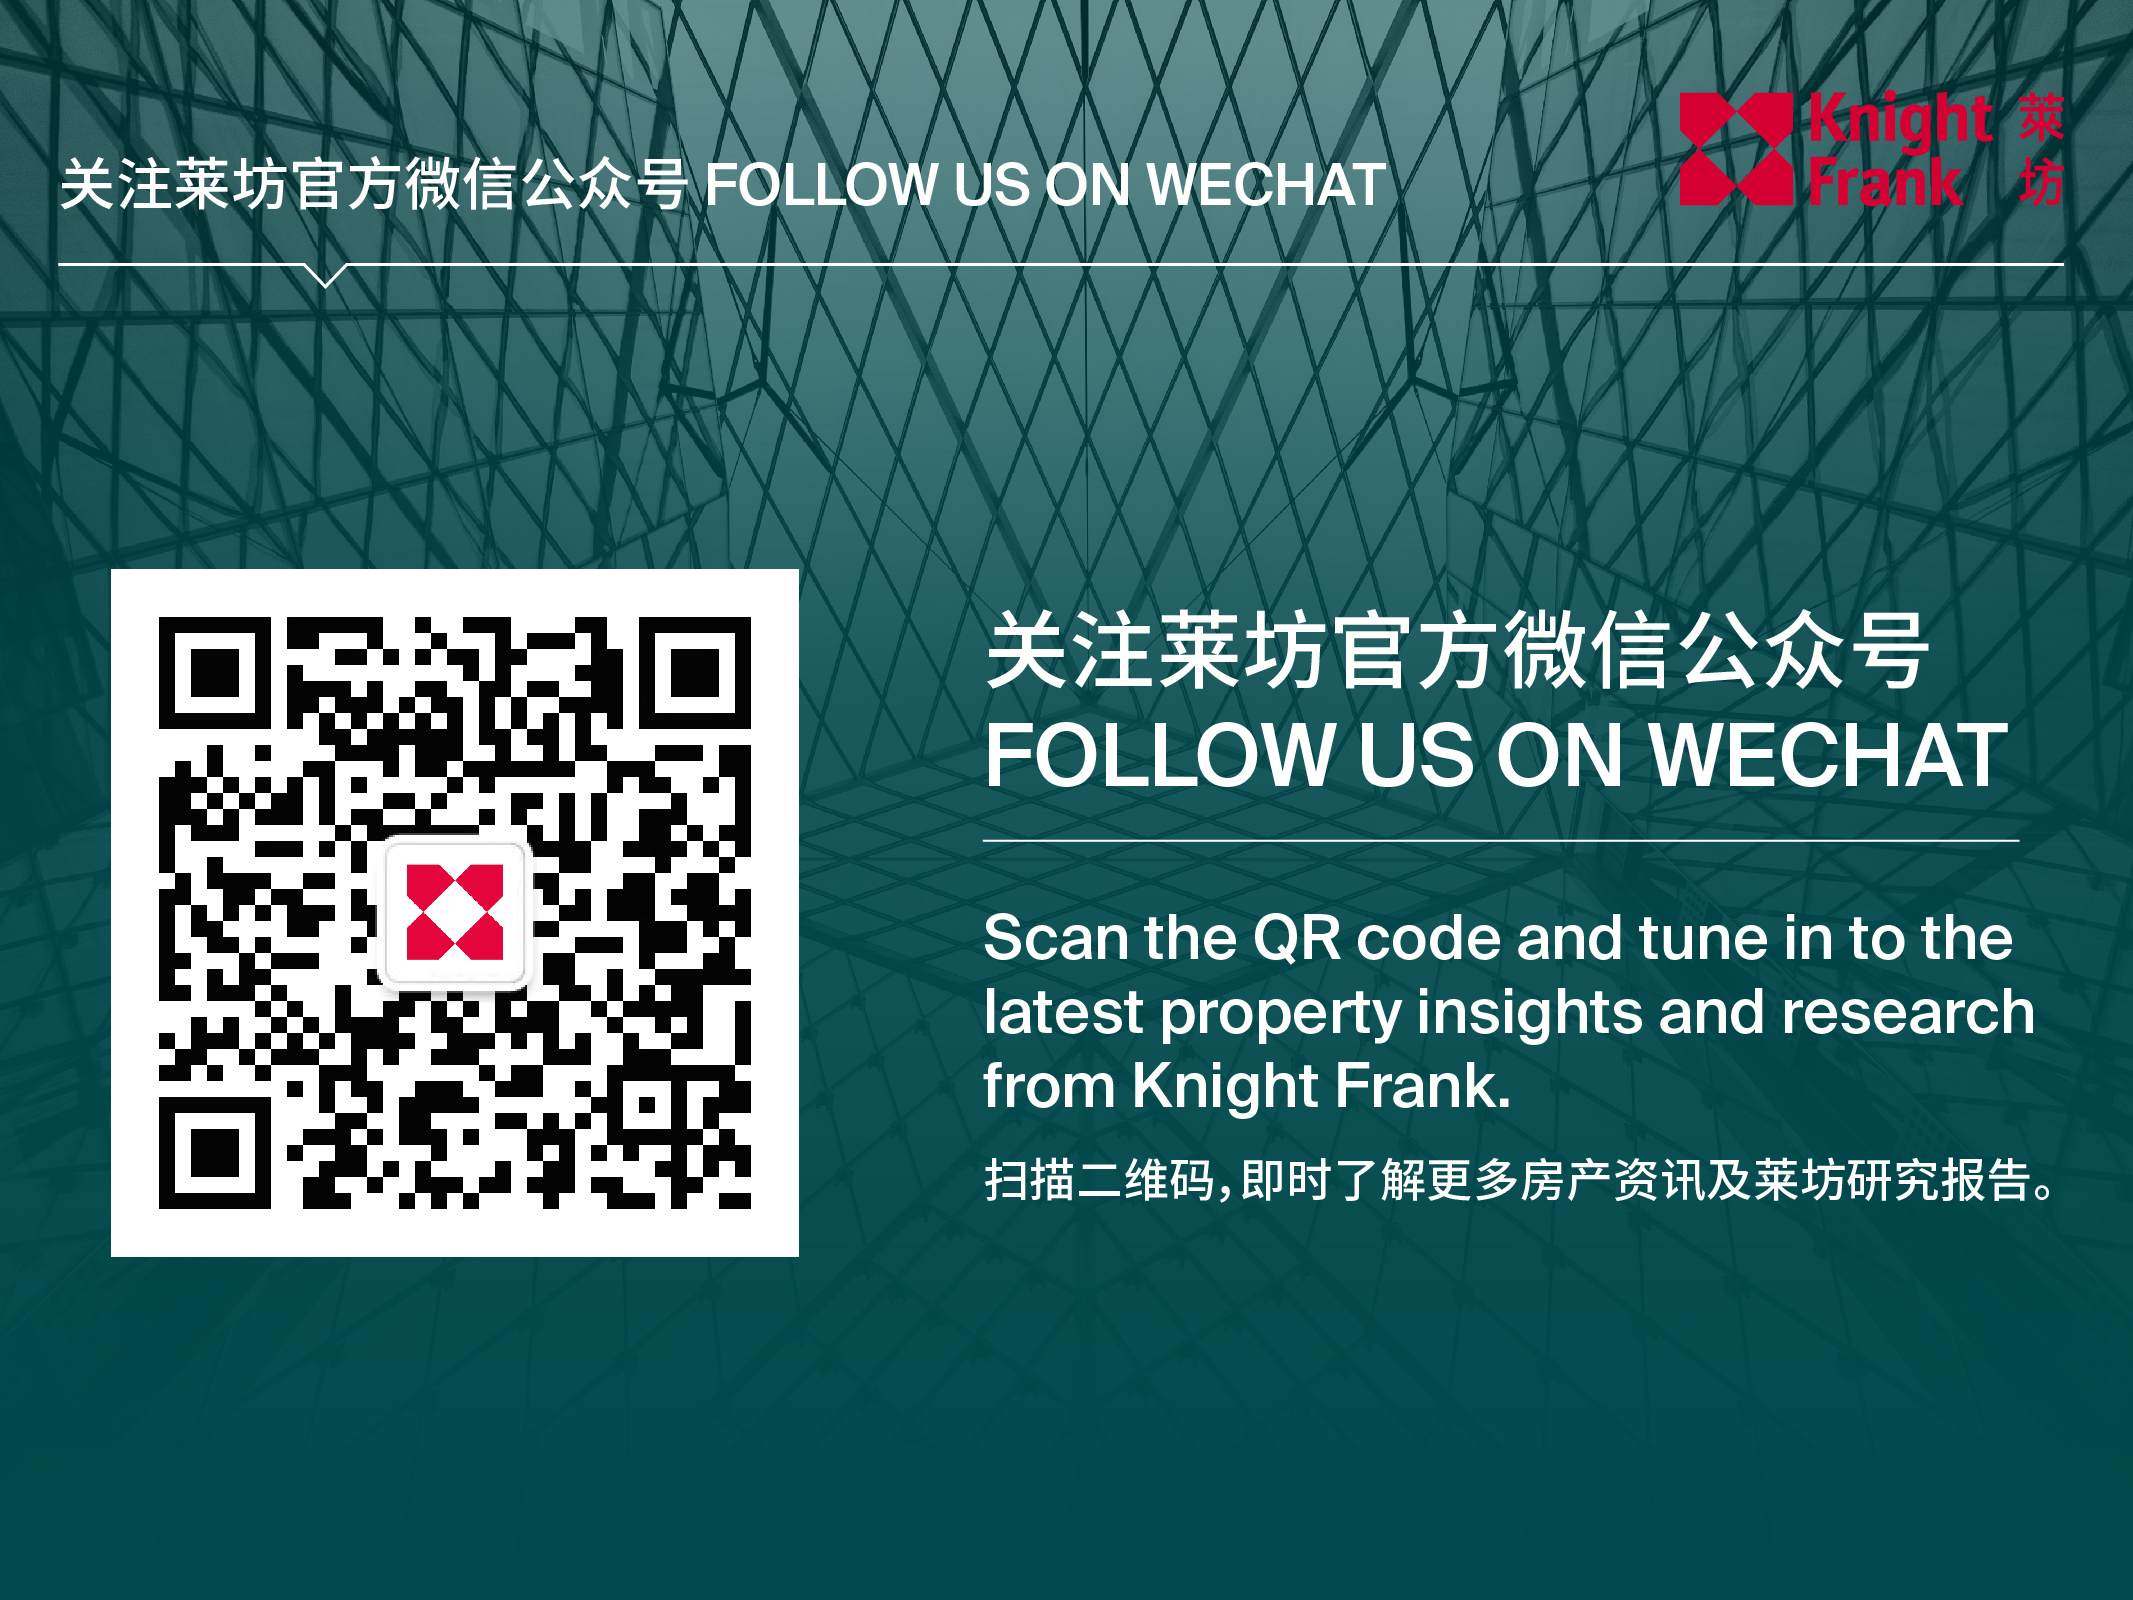 Knight Frank China capital markets